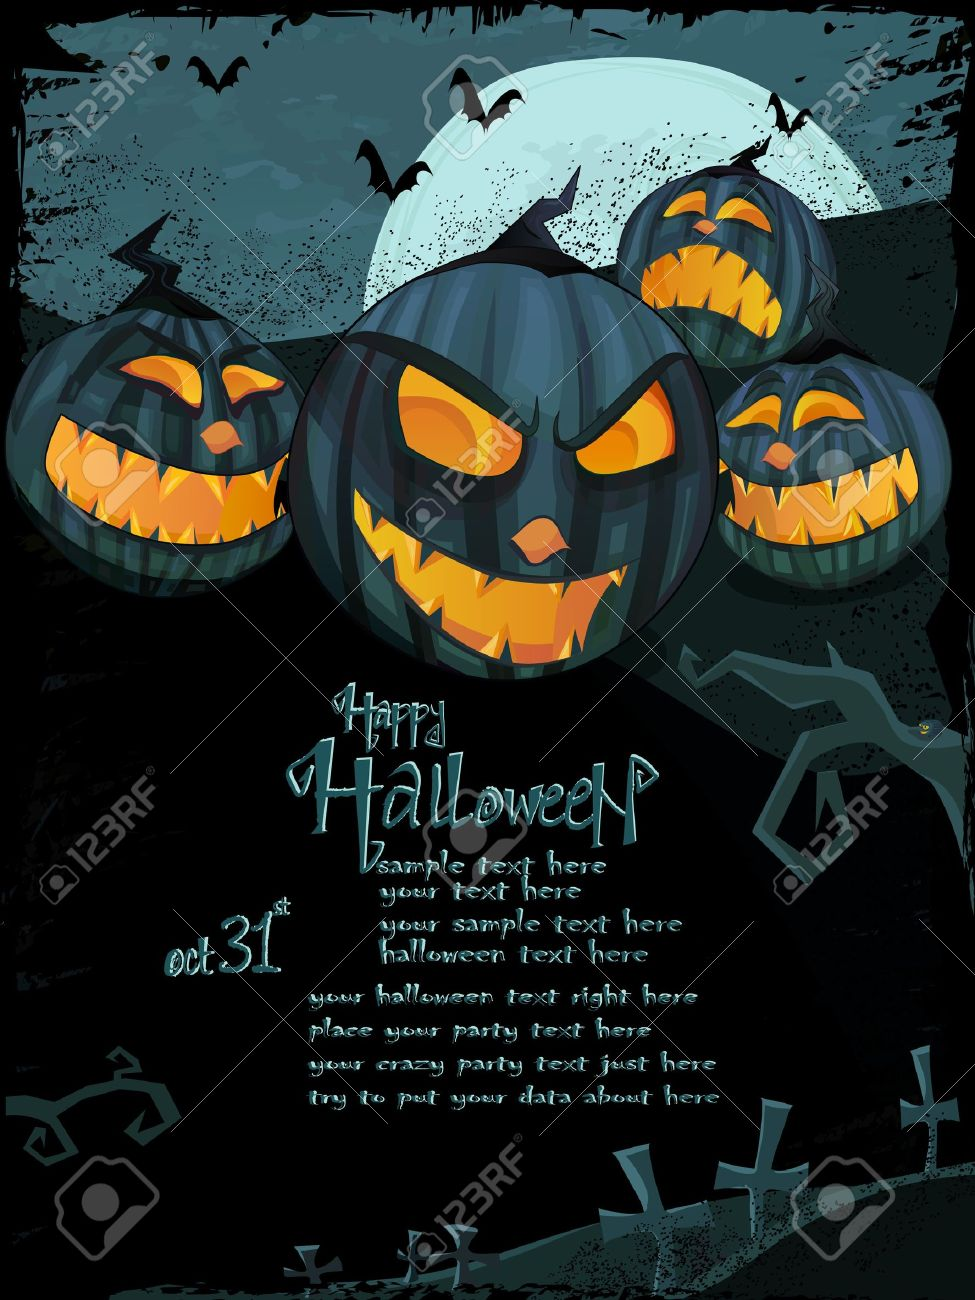 Halloween Template With Night Landscape, Evil Pumpkins, Spooky Tree,  Graveyard With Glowing Moon